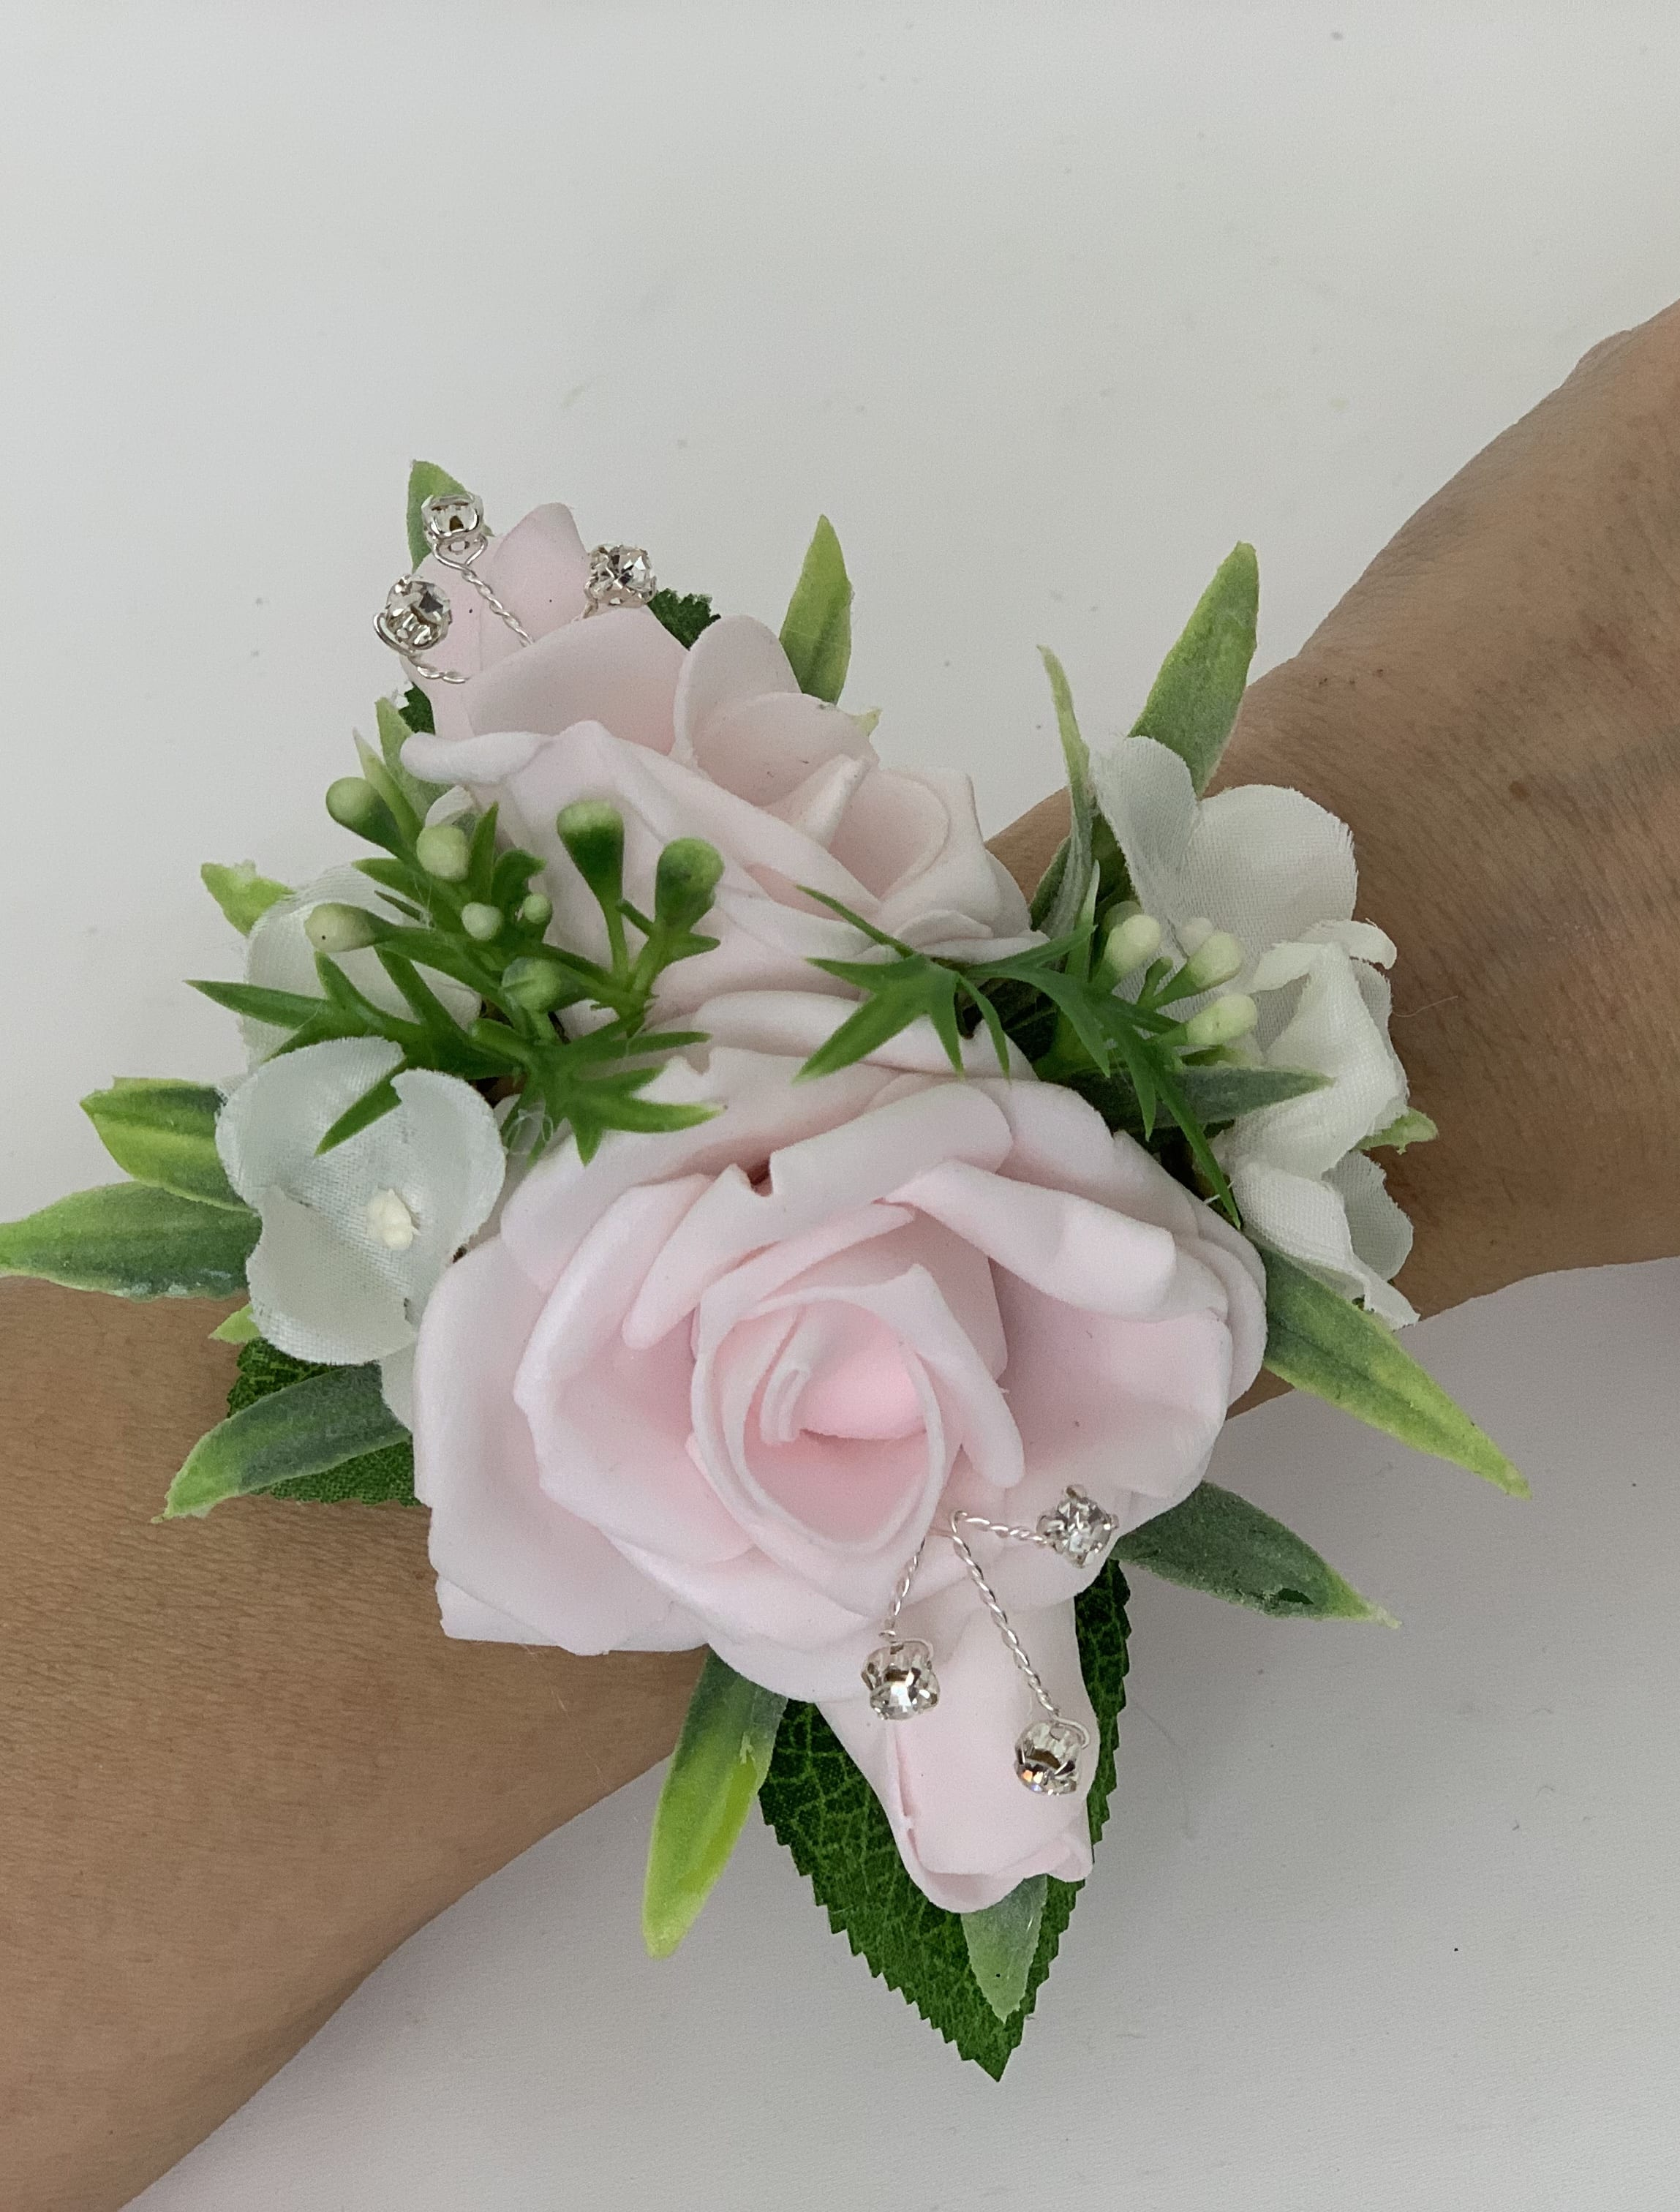 Wrist Corsage: Artificial Wedding Prom Wrist Corsage Bracelet Greenery